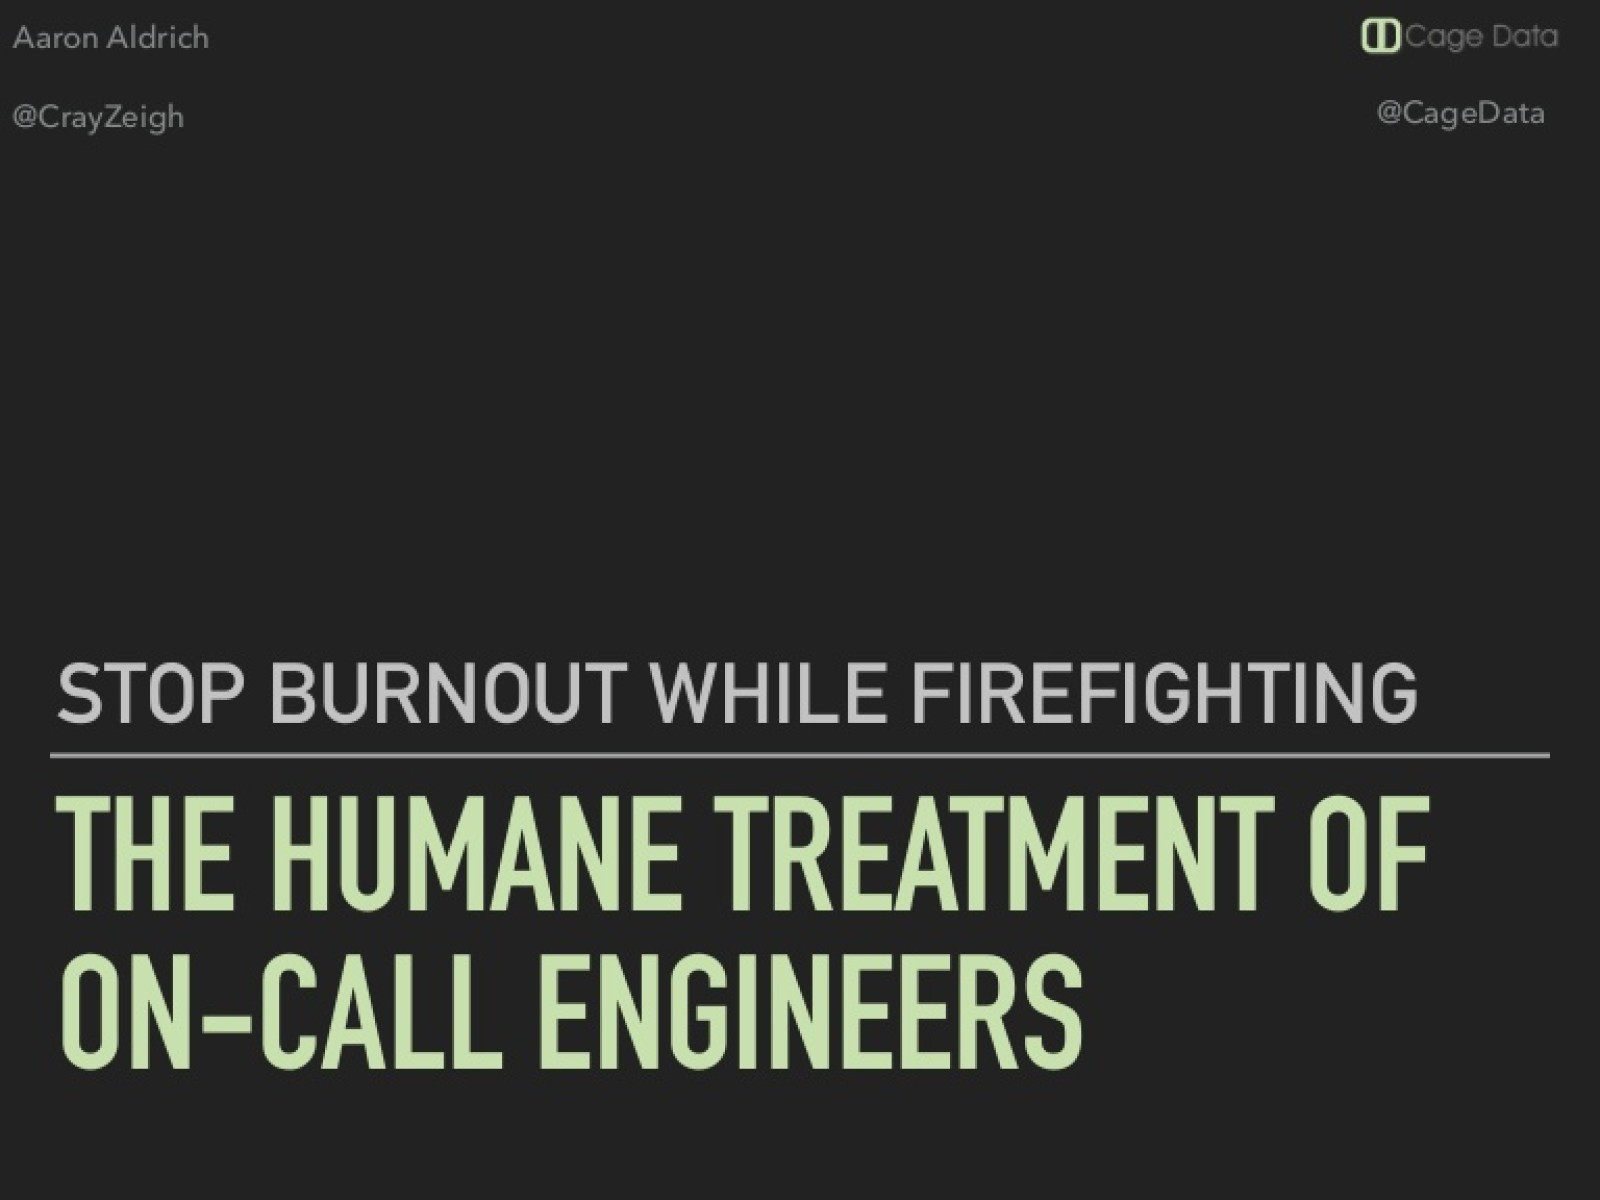 The Humane Treatment of On-Call Engineers